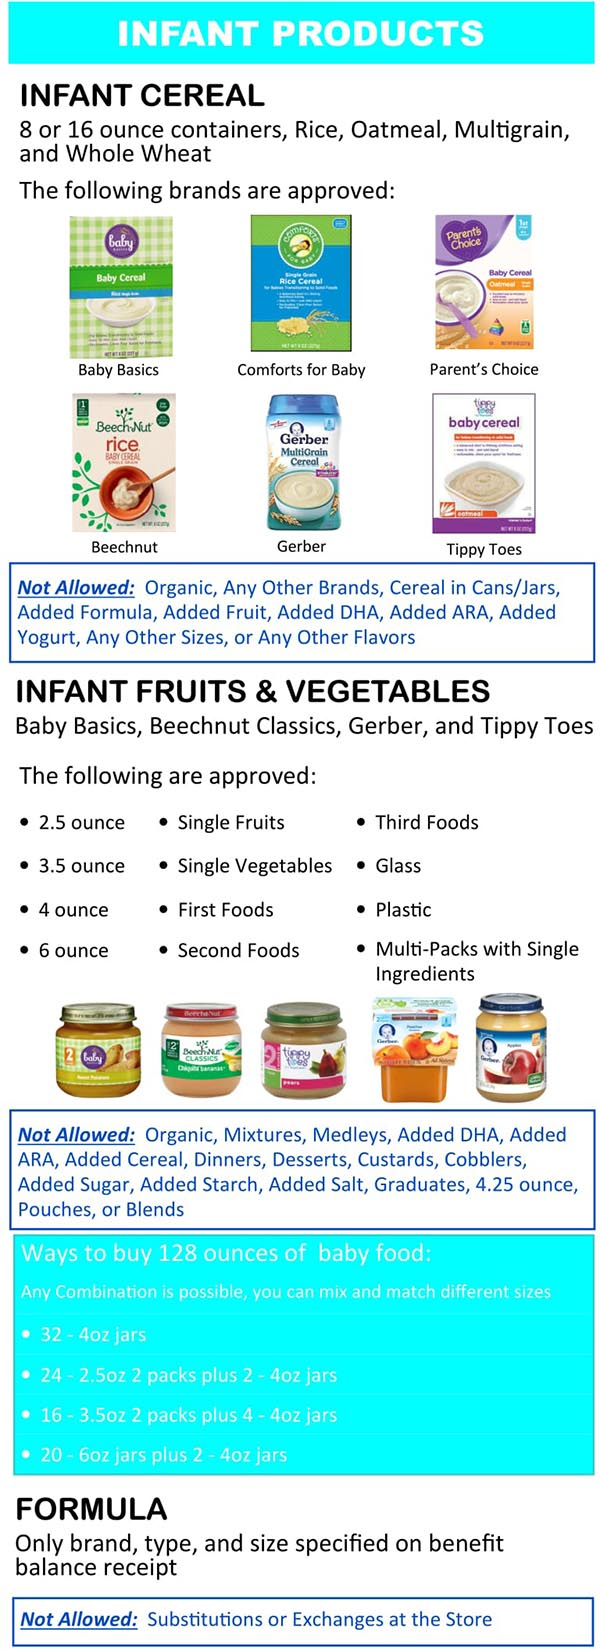 Wyoming WIC Food List Infant Products, Infant Cereal, Infant Formula, Infant Fruits and Vegetables